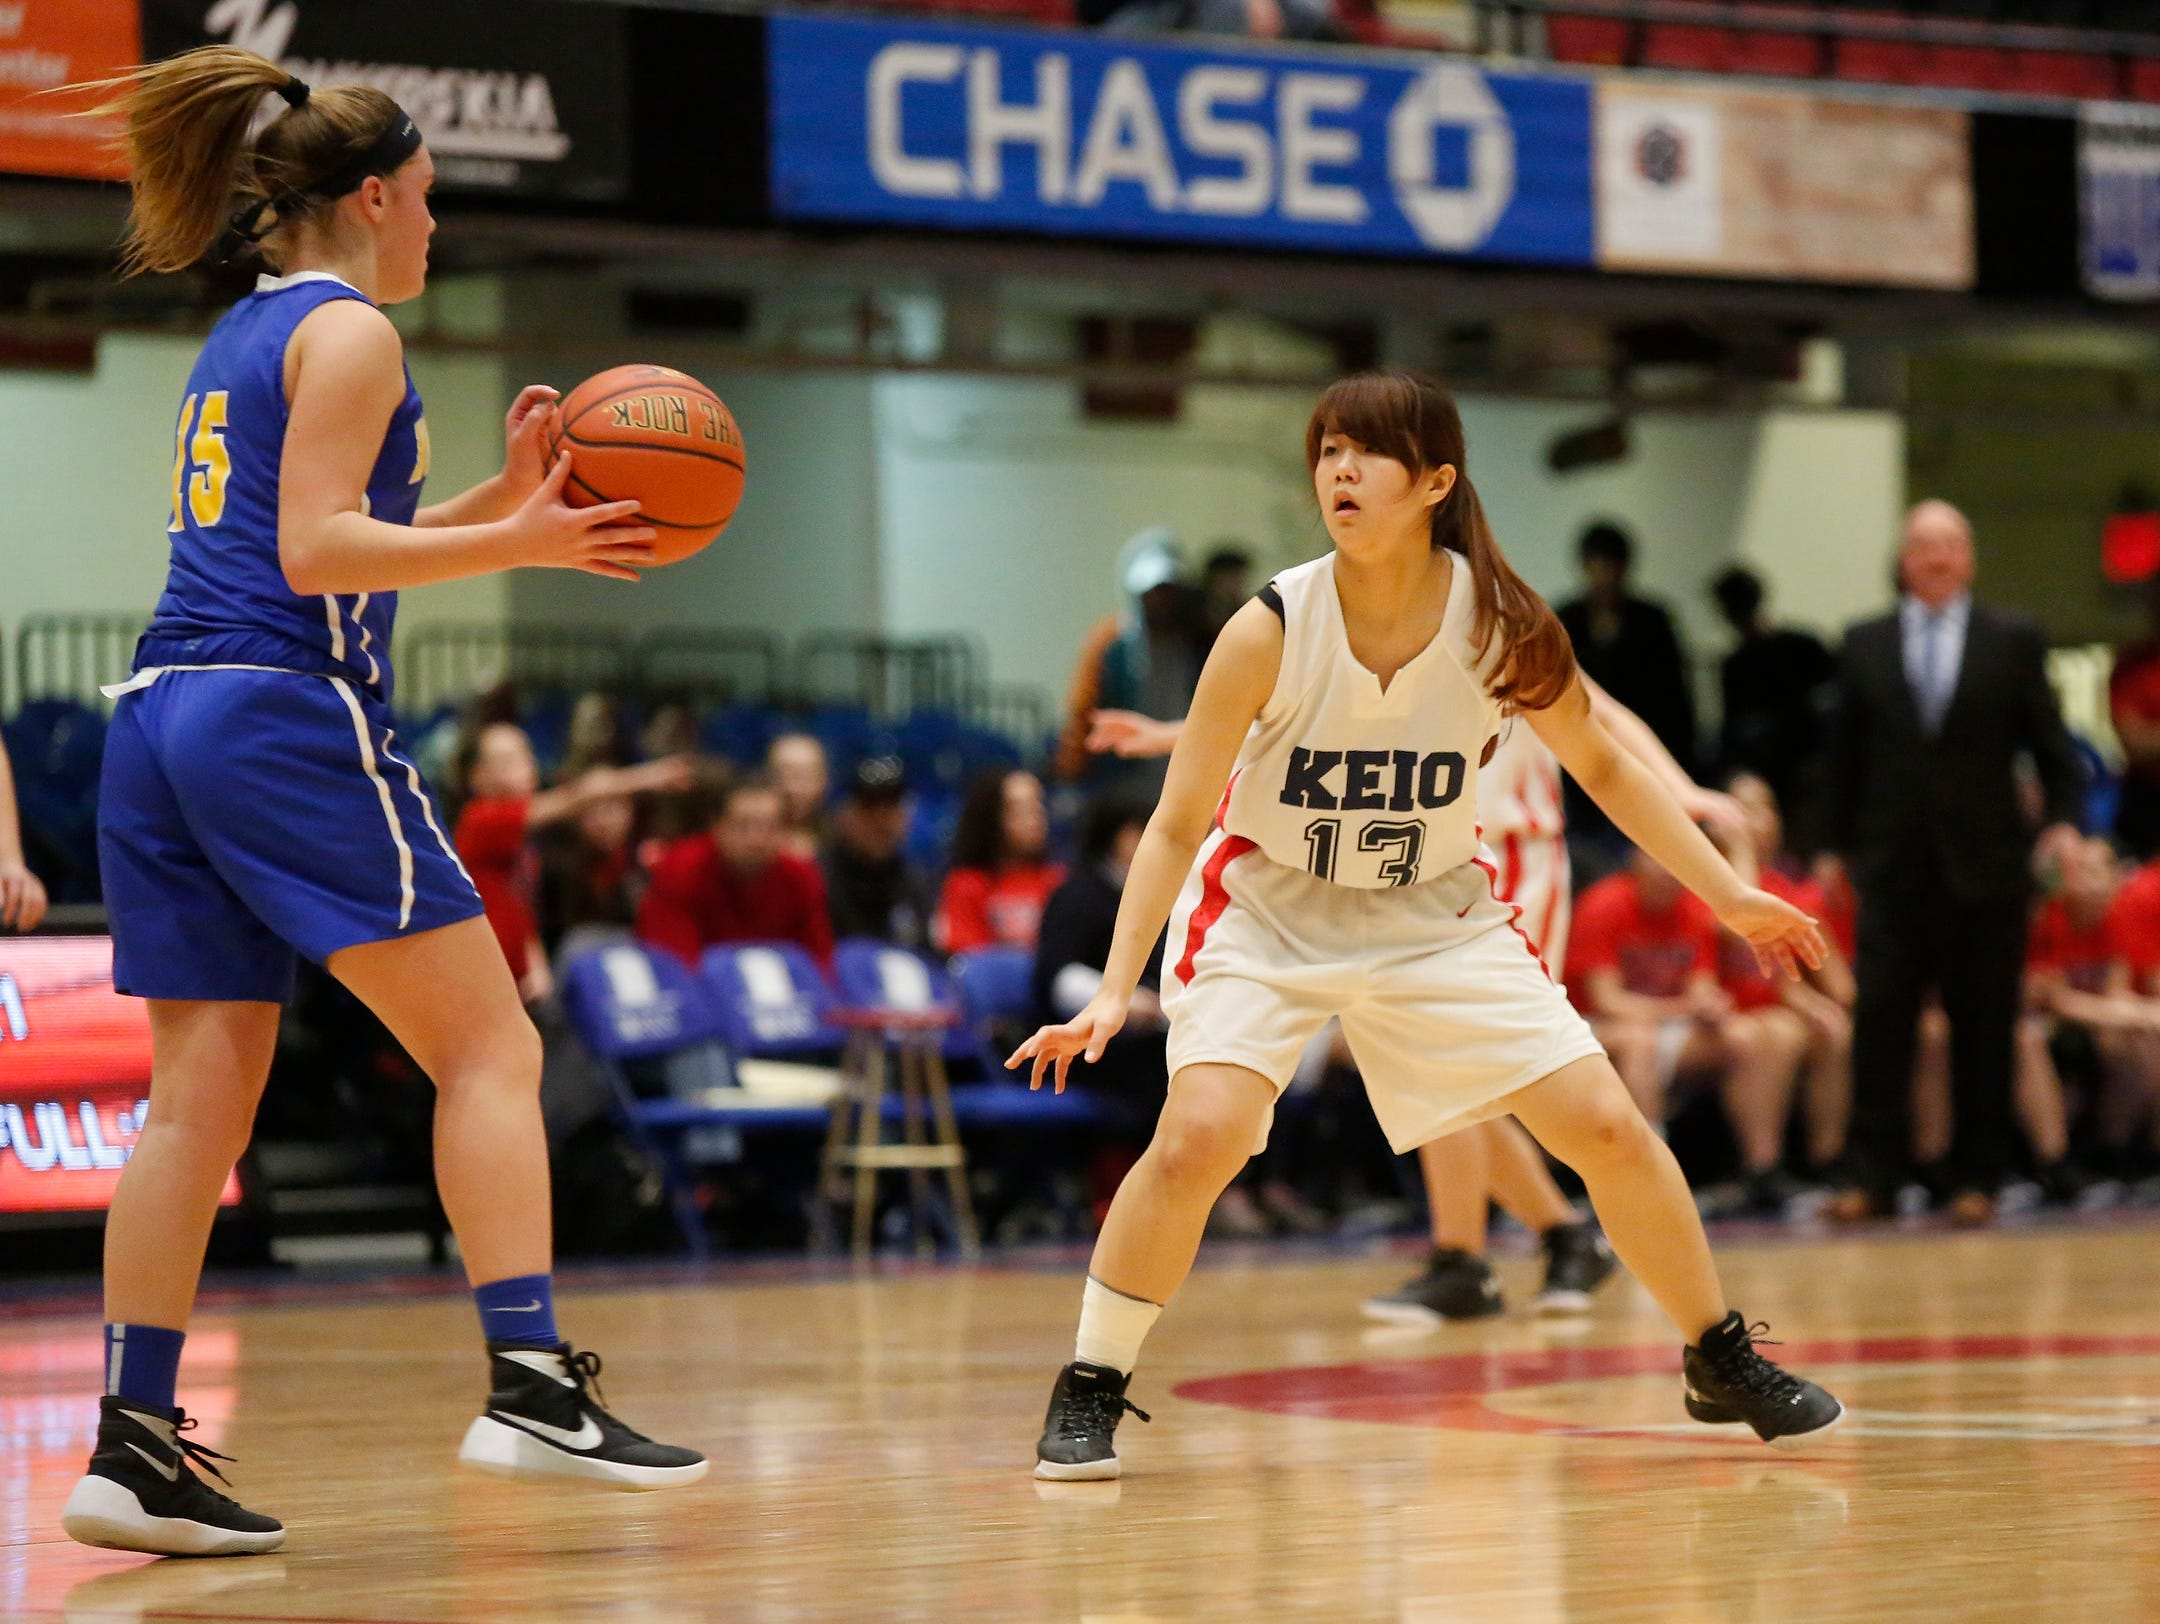 Keio's Mako Morozumi plays a tough defense on North Salem's Geace Curren (15) in the class C semi-final basketball game at the Westchester County Center in White Plains on Saturday, February 27, 2016.